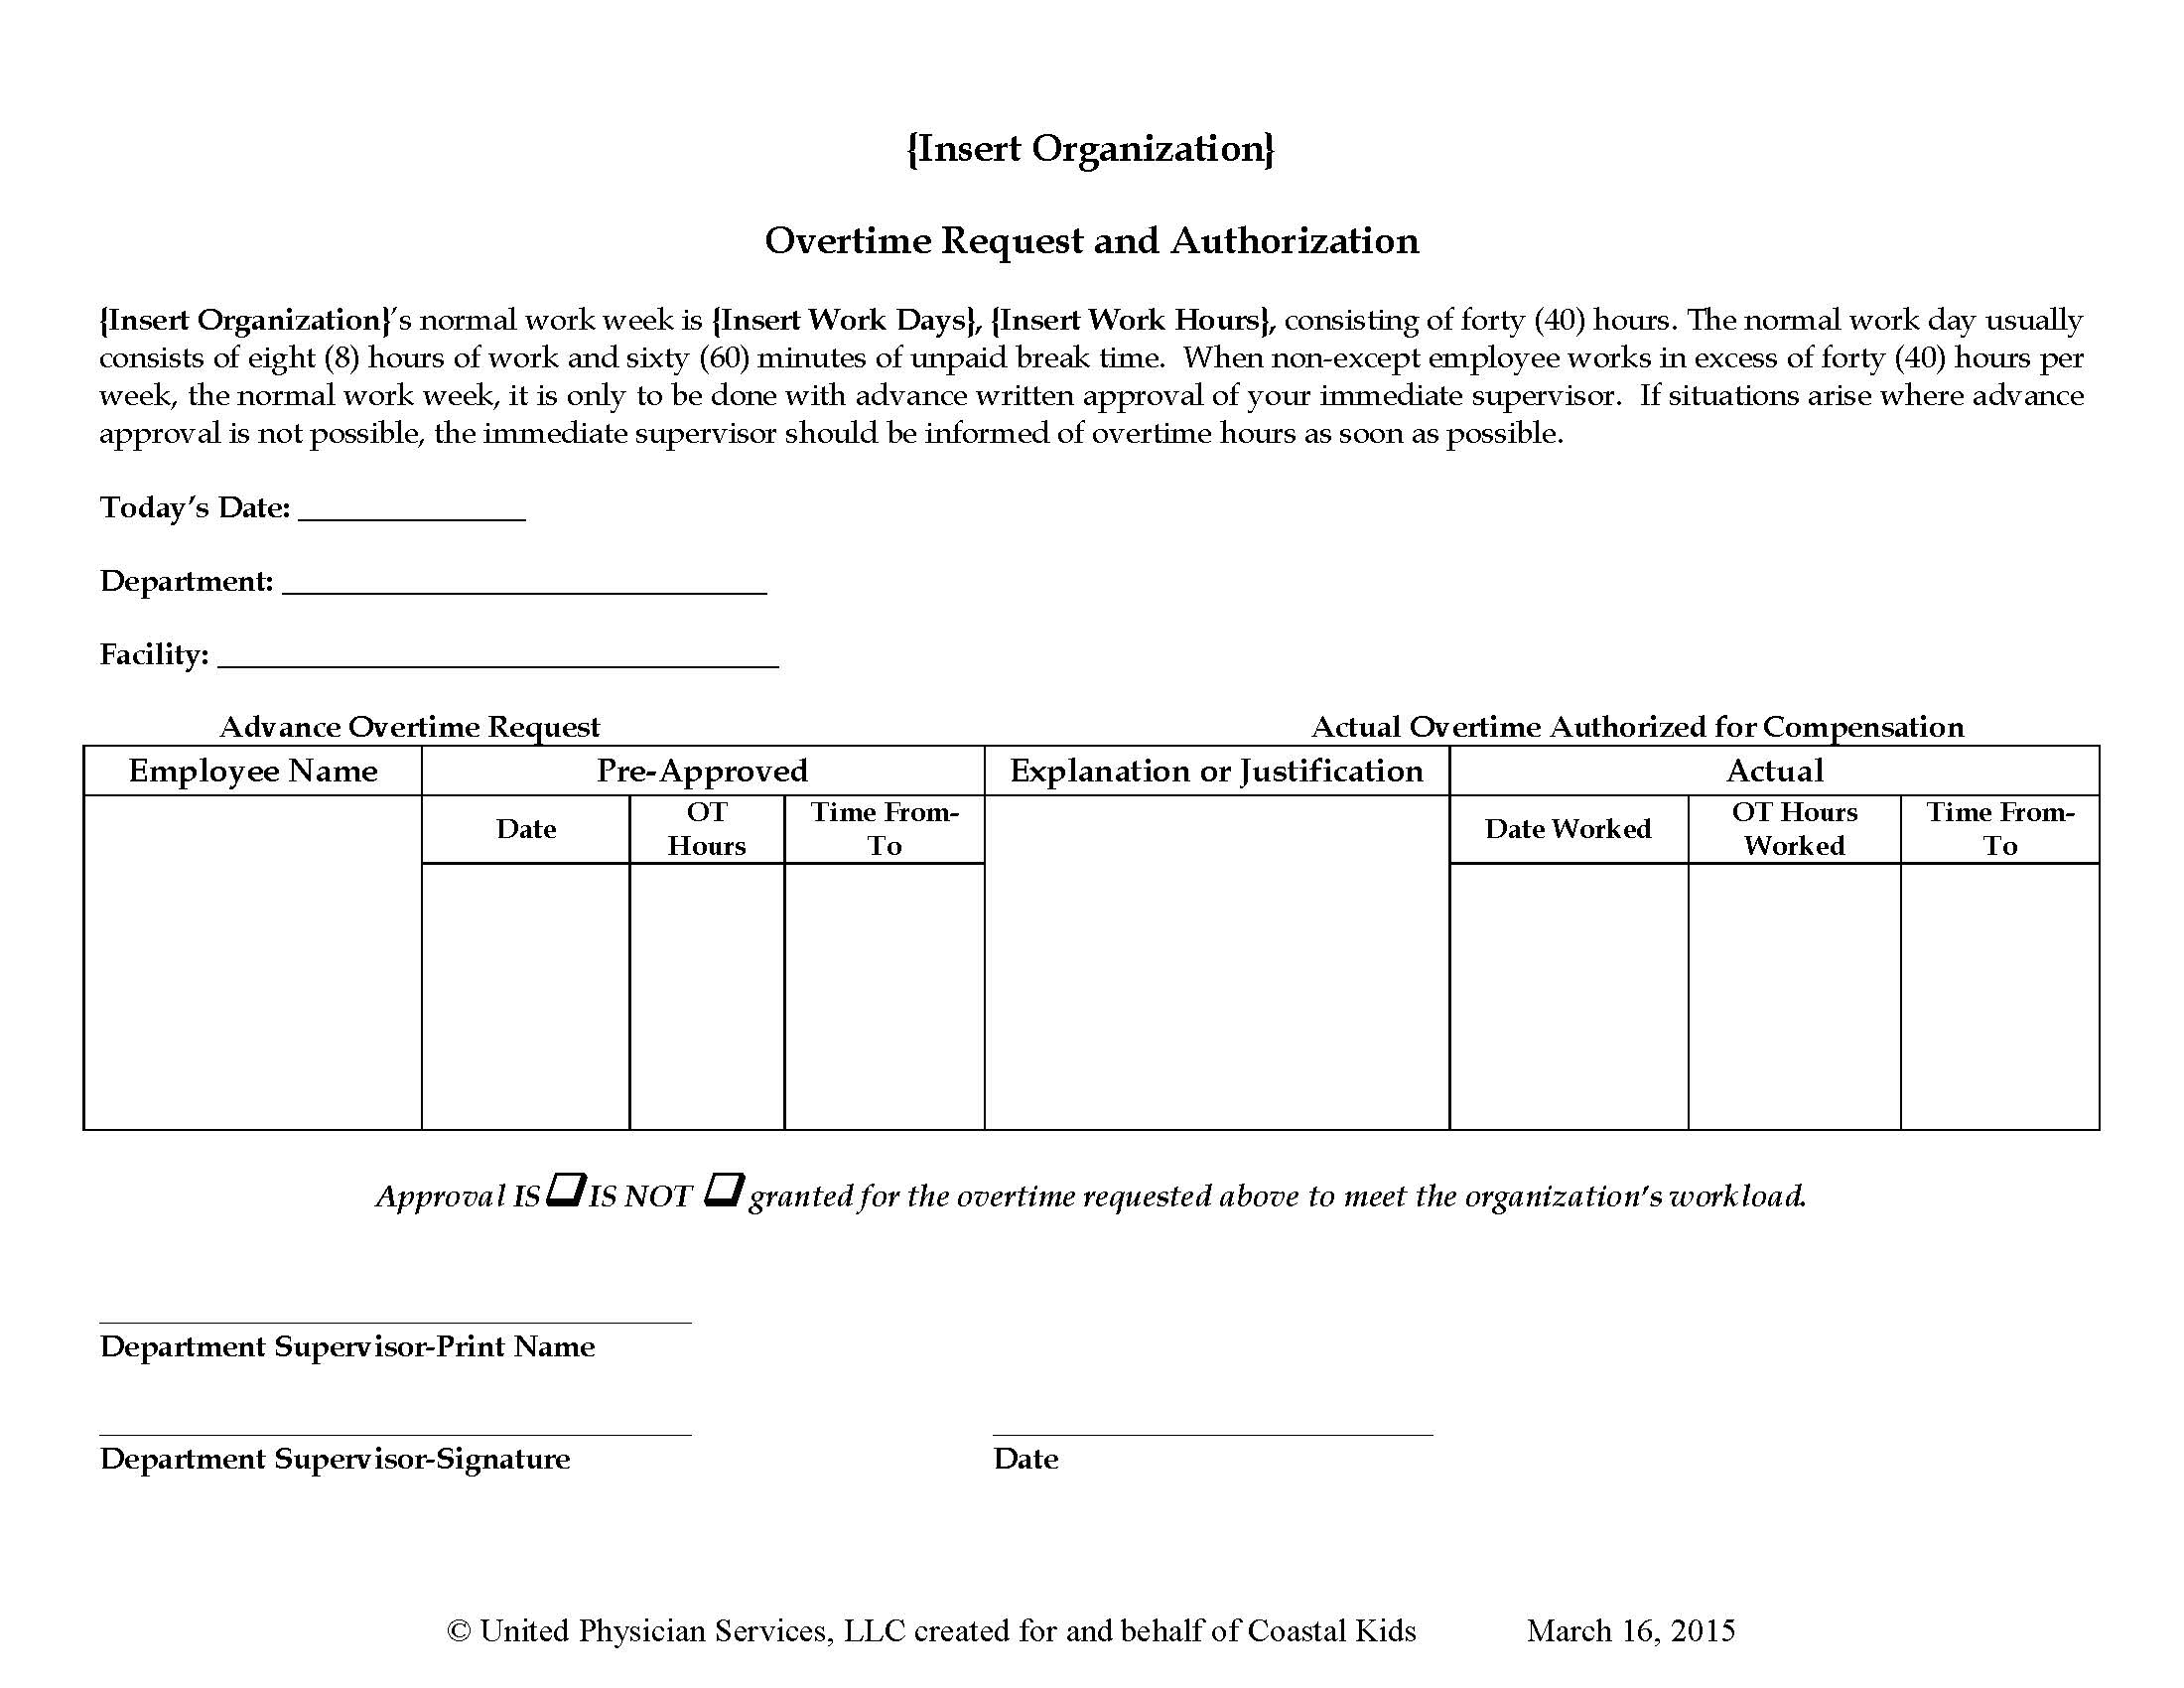 Overtime Request and Authorization Form | United Physician Services